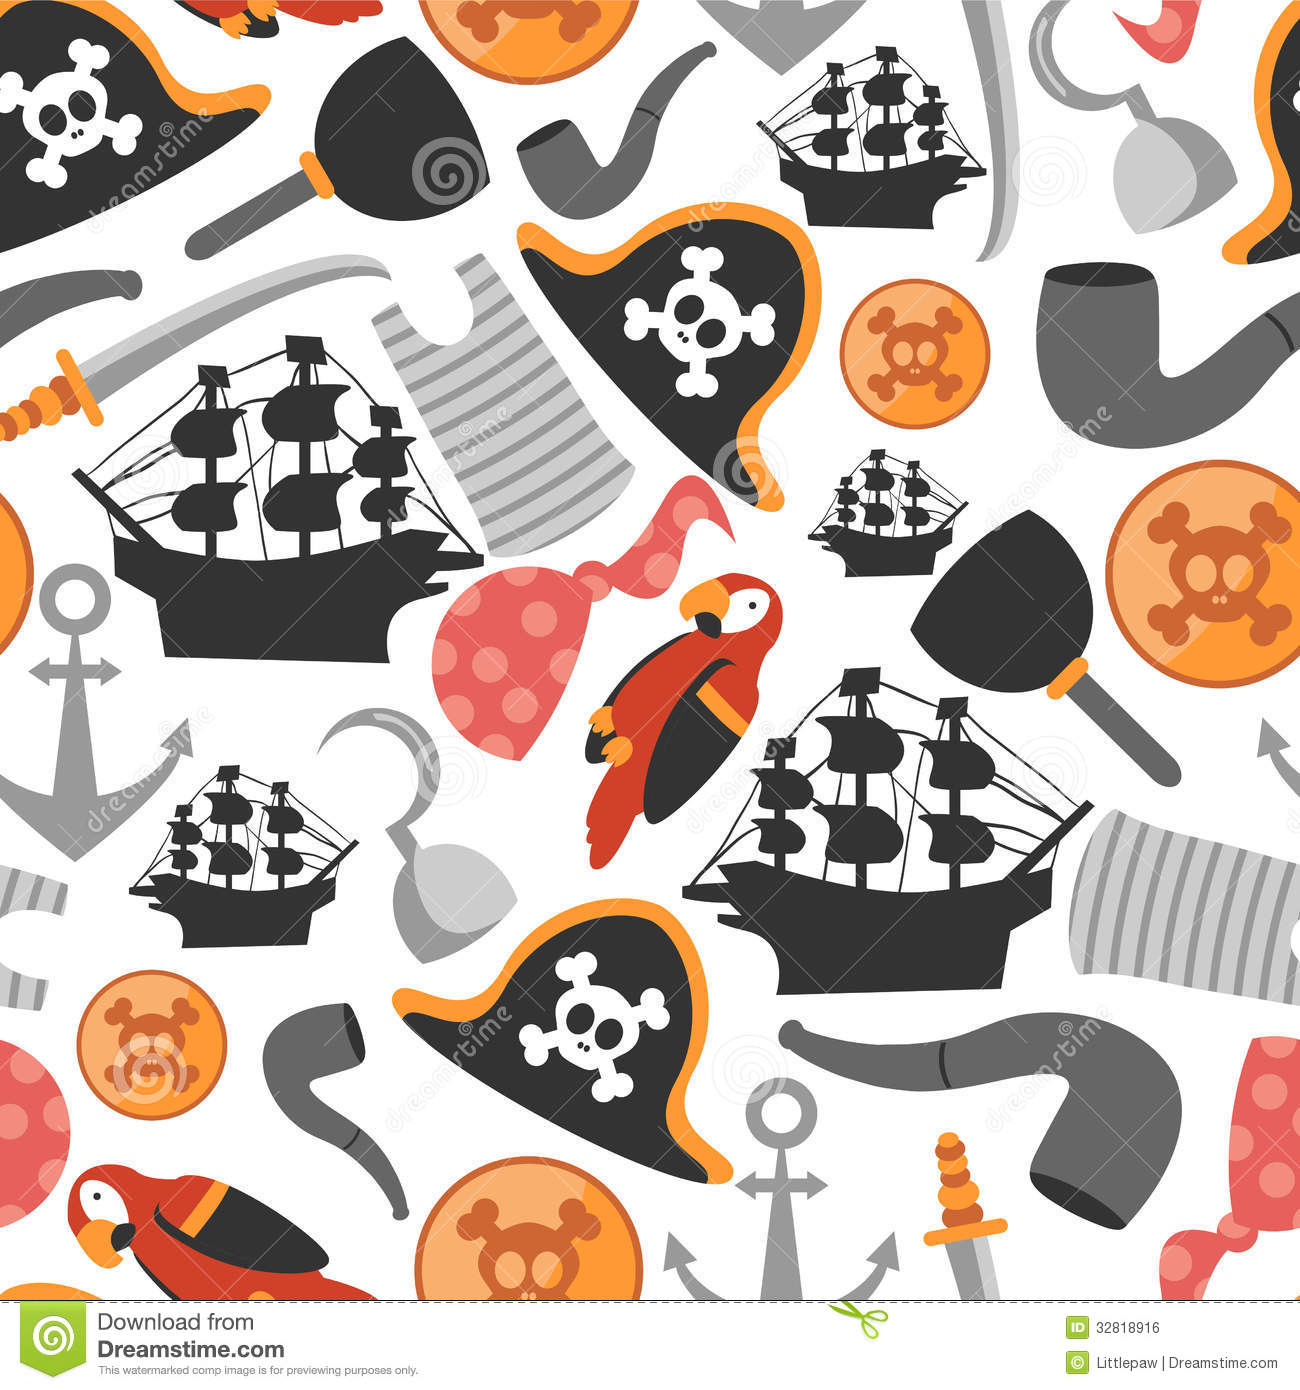 Patterns For Pirates Image Mag : seamless pattern pirate elements various 32818916 from imagemag.ru size 1300 x 1390 jpeg 194kB